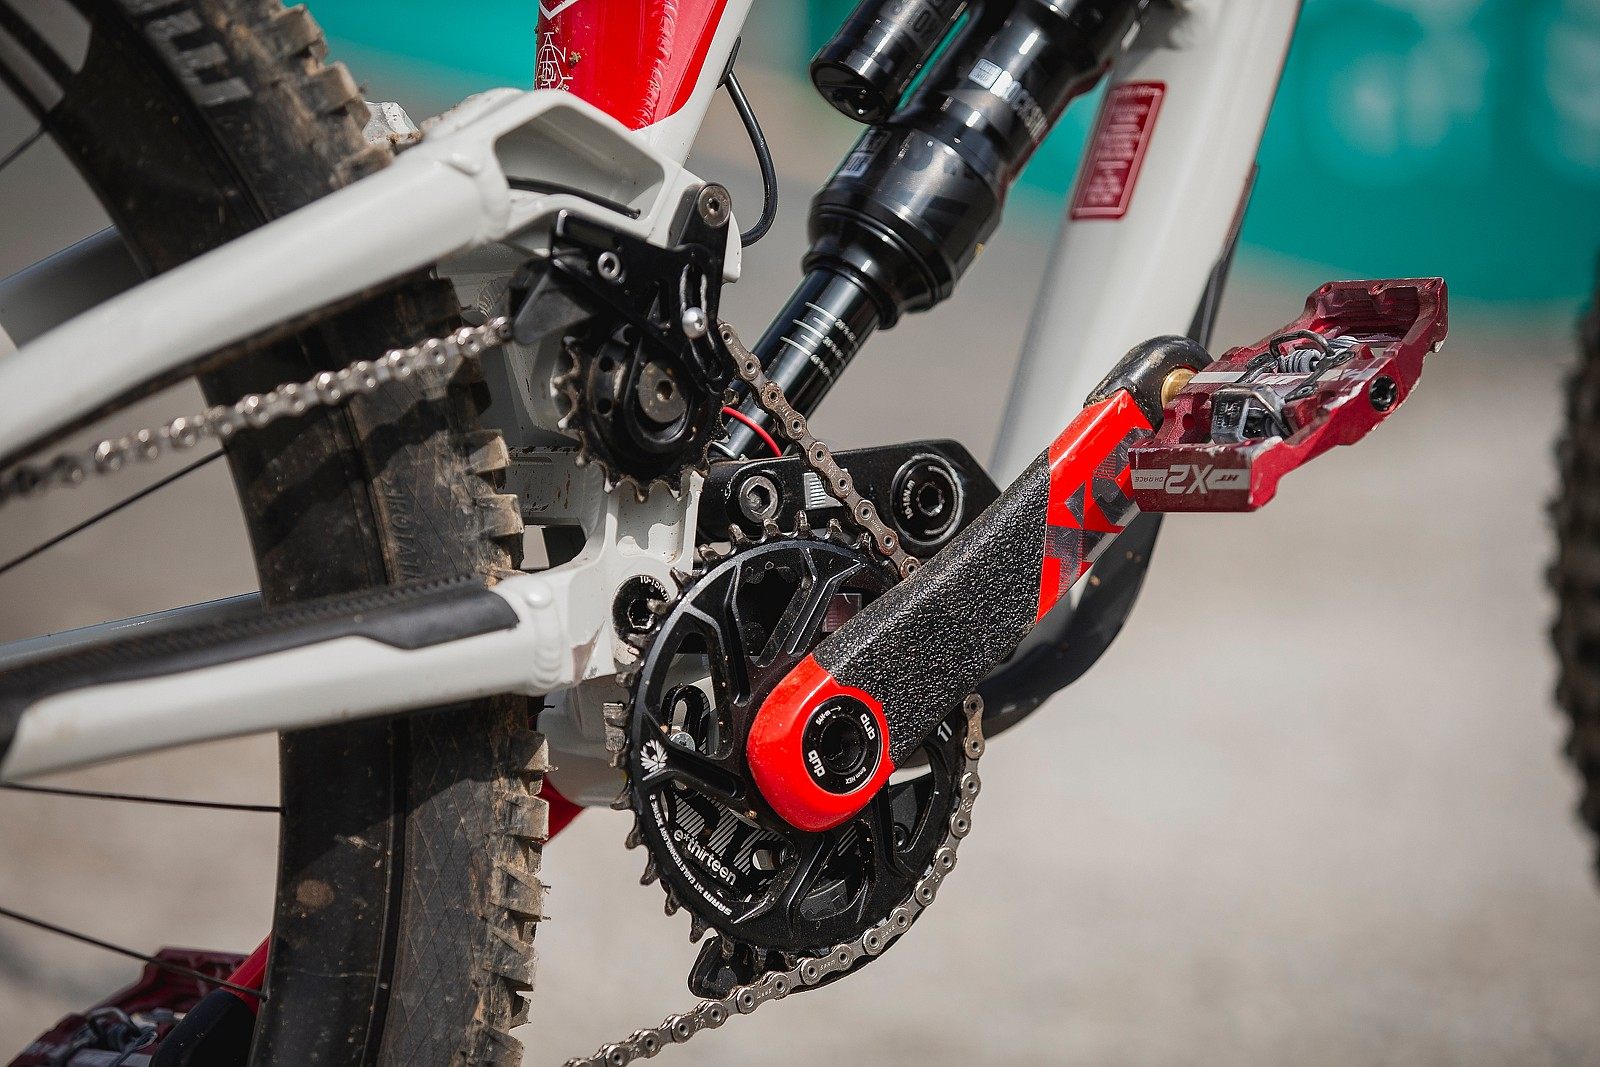 Mid-Position Idler and Anti-Vibration Sticker - WINNING BIKE - Amaury Pierron's Commencal Supreme DH - Mountain Biking Pictures - Vital MTB